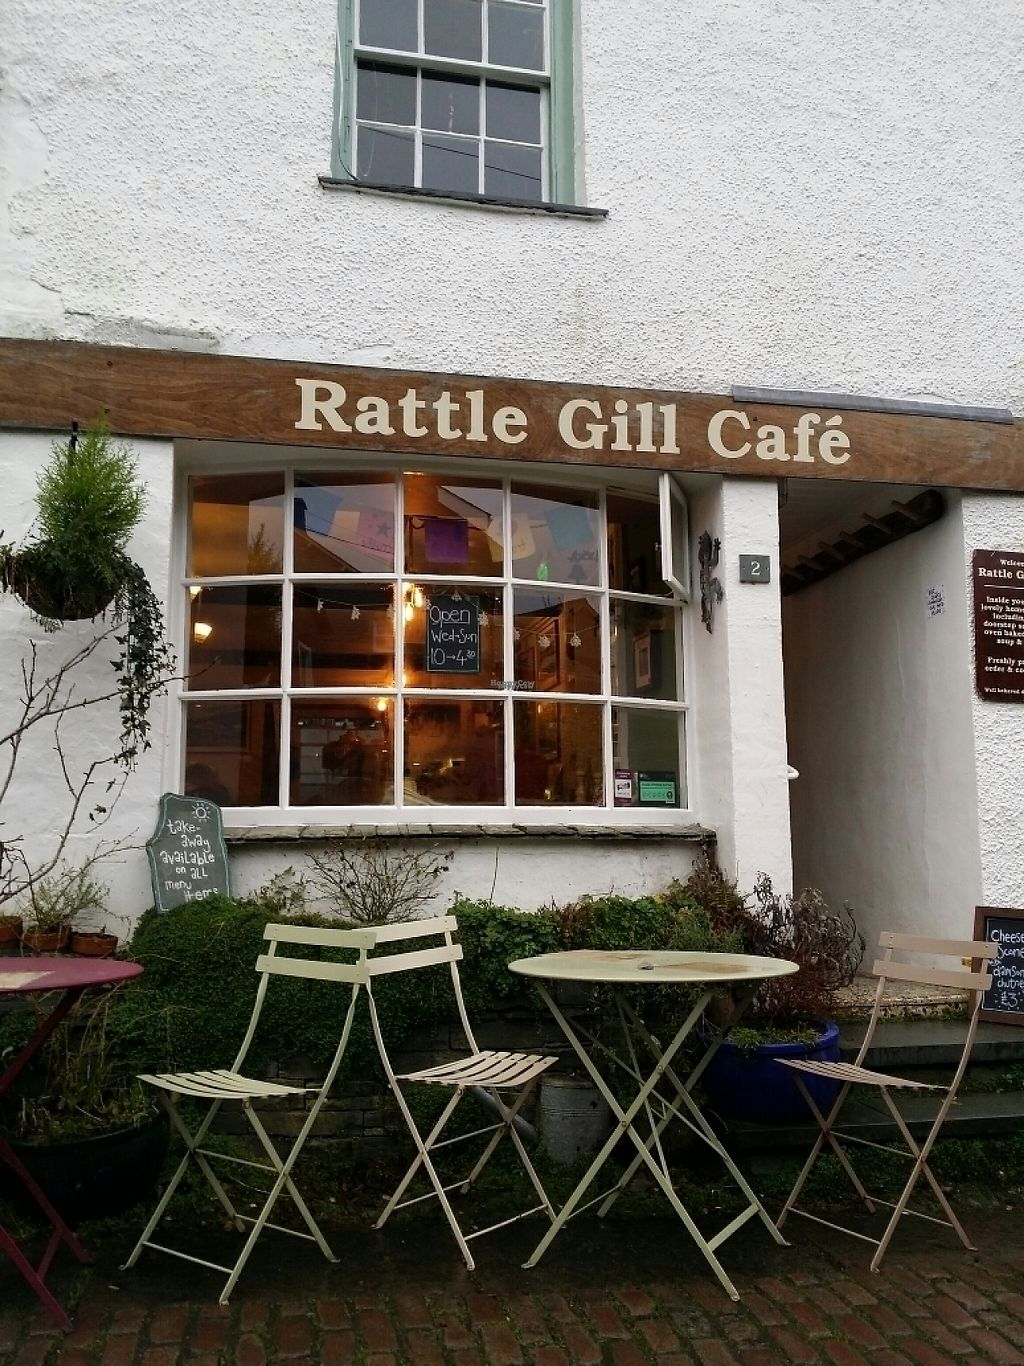 """Photo of Rattle Gill Cafe  by <a href=""""/members/profile/Bertolini"""">Bertolini</a> <br/>Lovely welcoming café  <br/> January 8, 2017  - <a href='/contact/abuse/image/18799/209682'>Report</a>"""